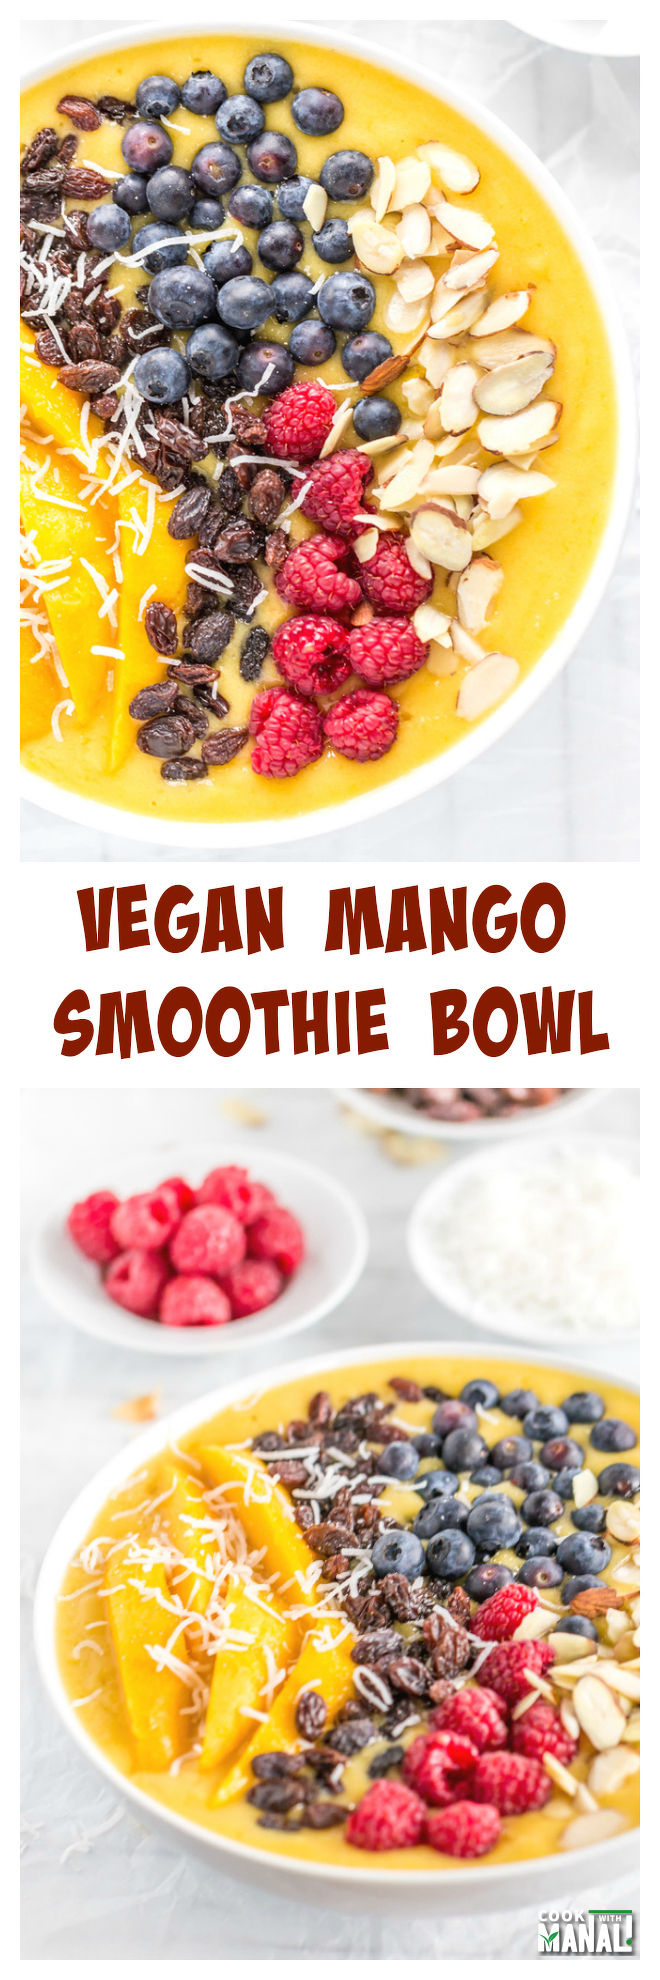 Vegan Mango Smoothie Bowl Collage